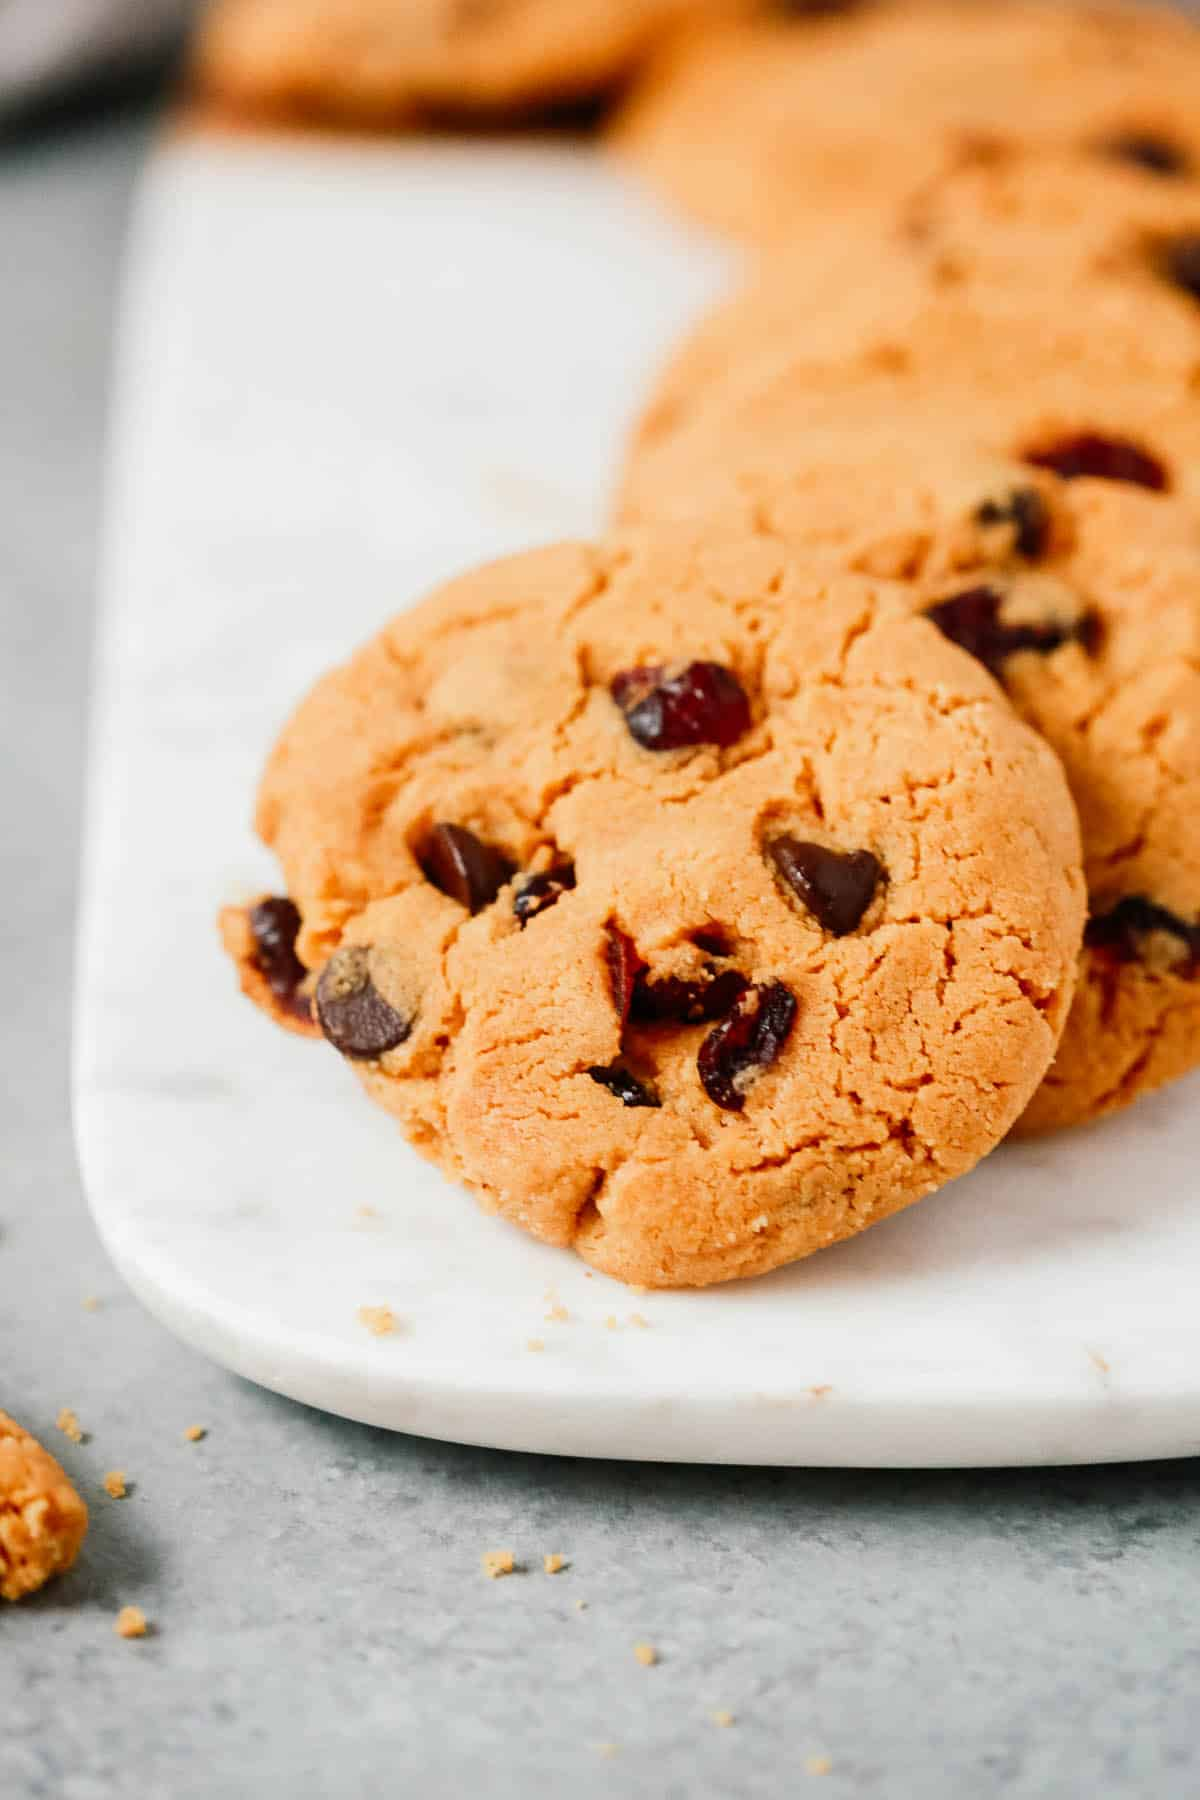 Close up of a cranberry chocolate chip cookie.